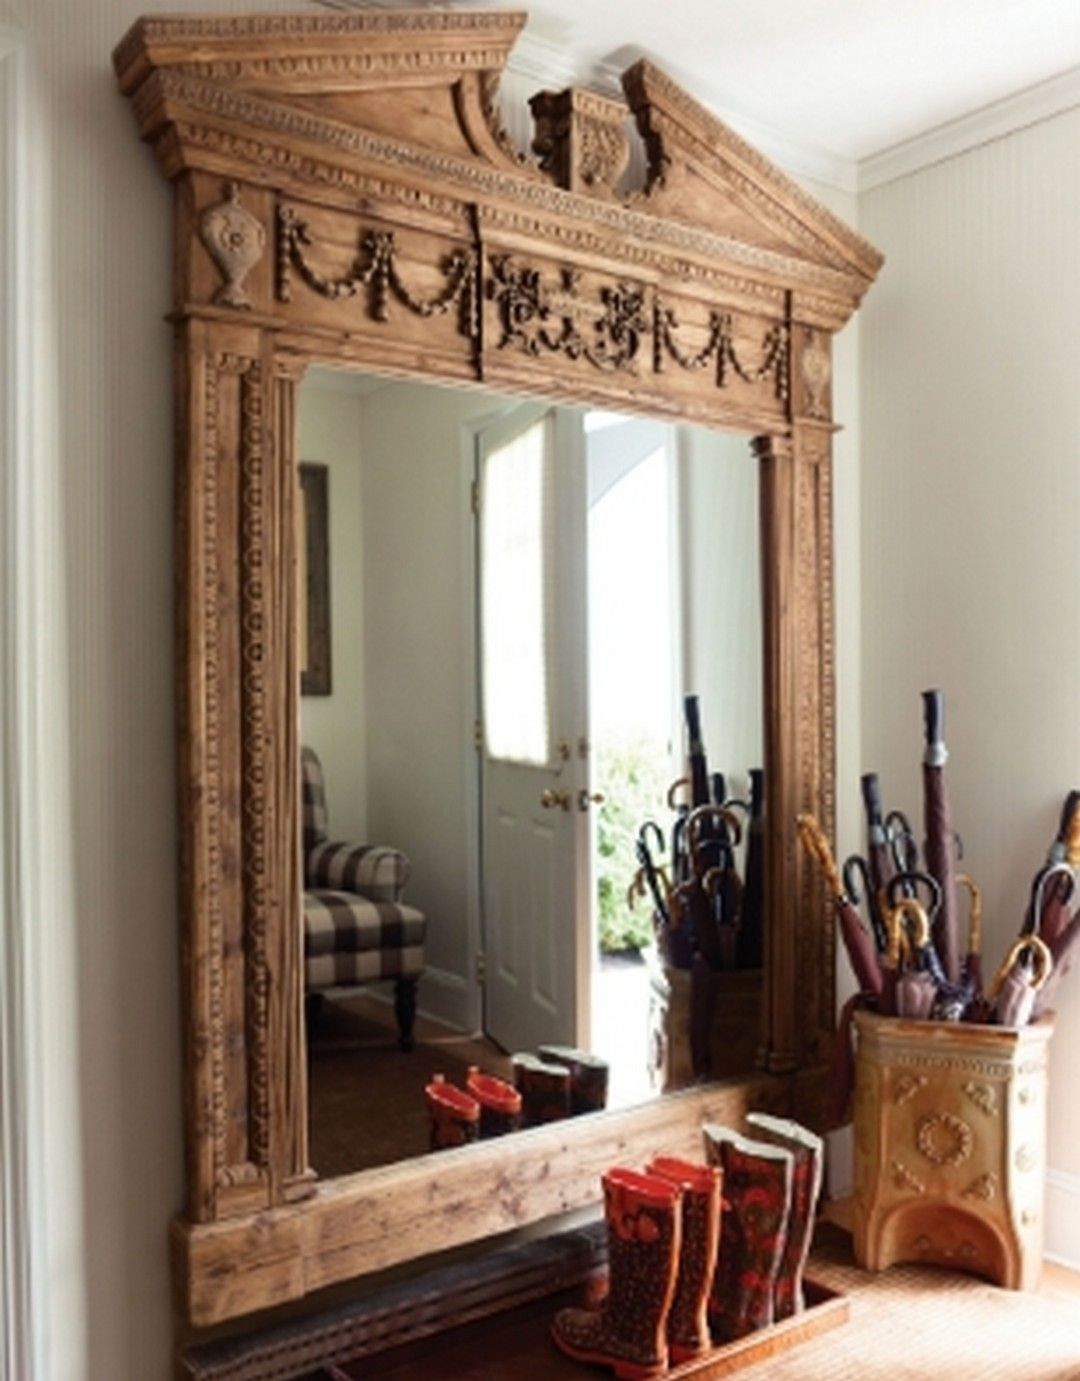 8 new mirror design ideas with wooden furniture in 2020 on ideas for decorating entryway contemporary wall mirrors id=20980